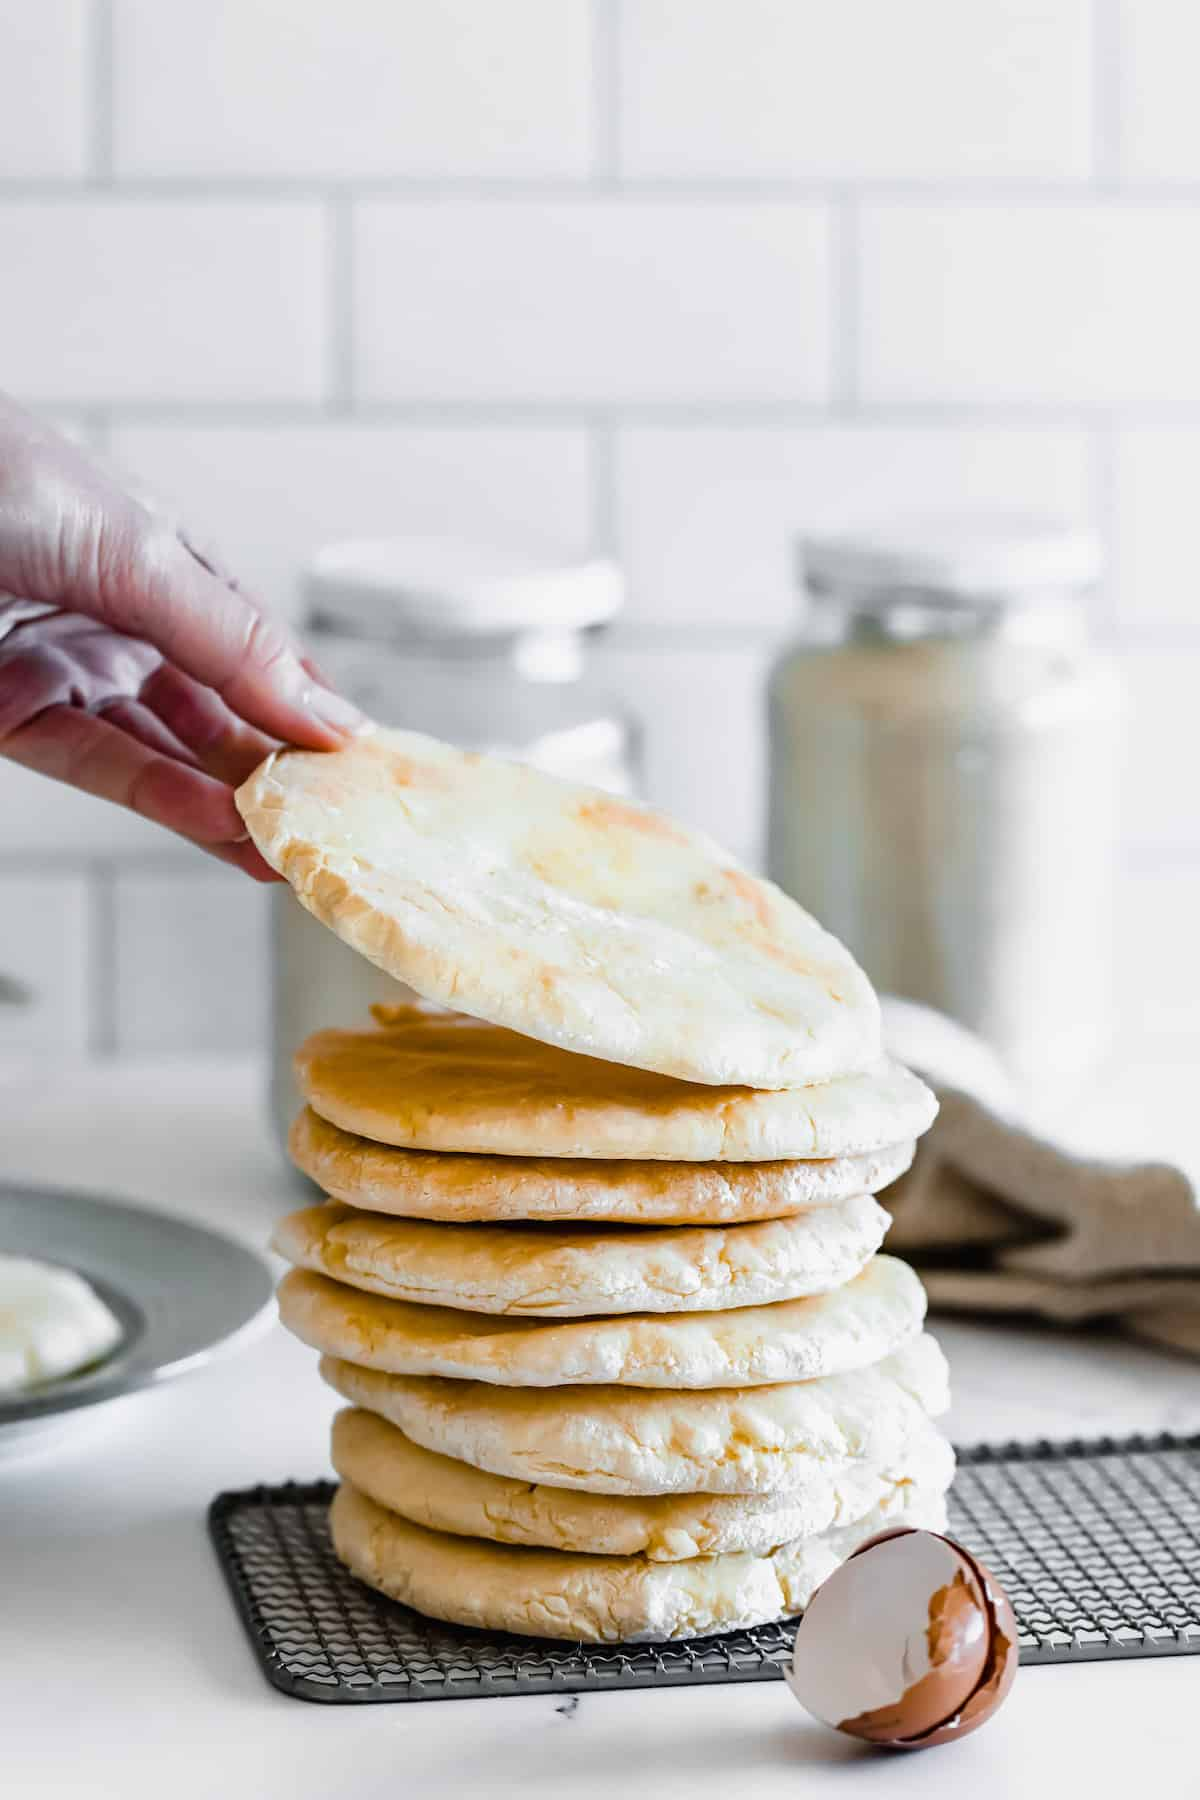 A Hand Grabbing a Piece of Pita Bread from the Top of the Stack